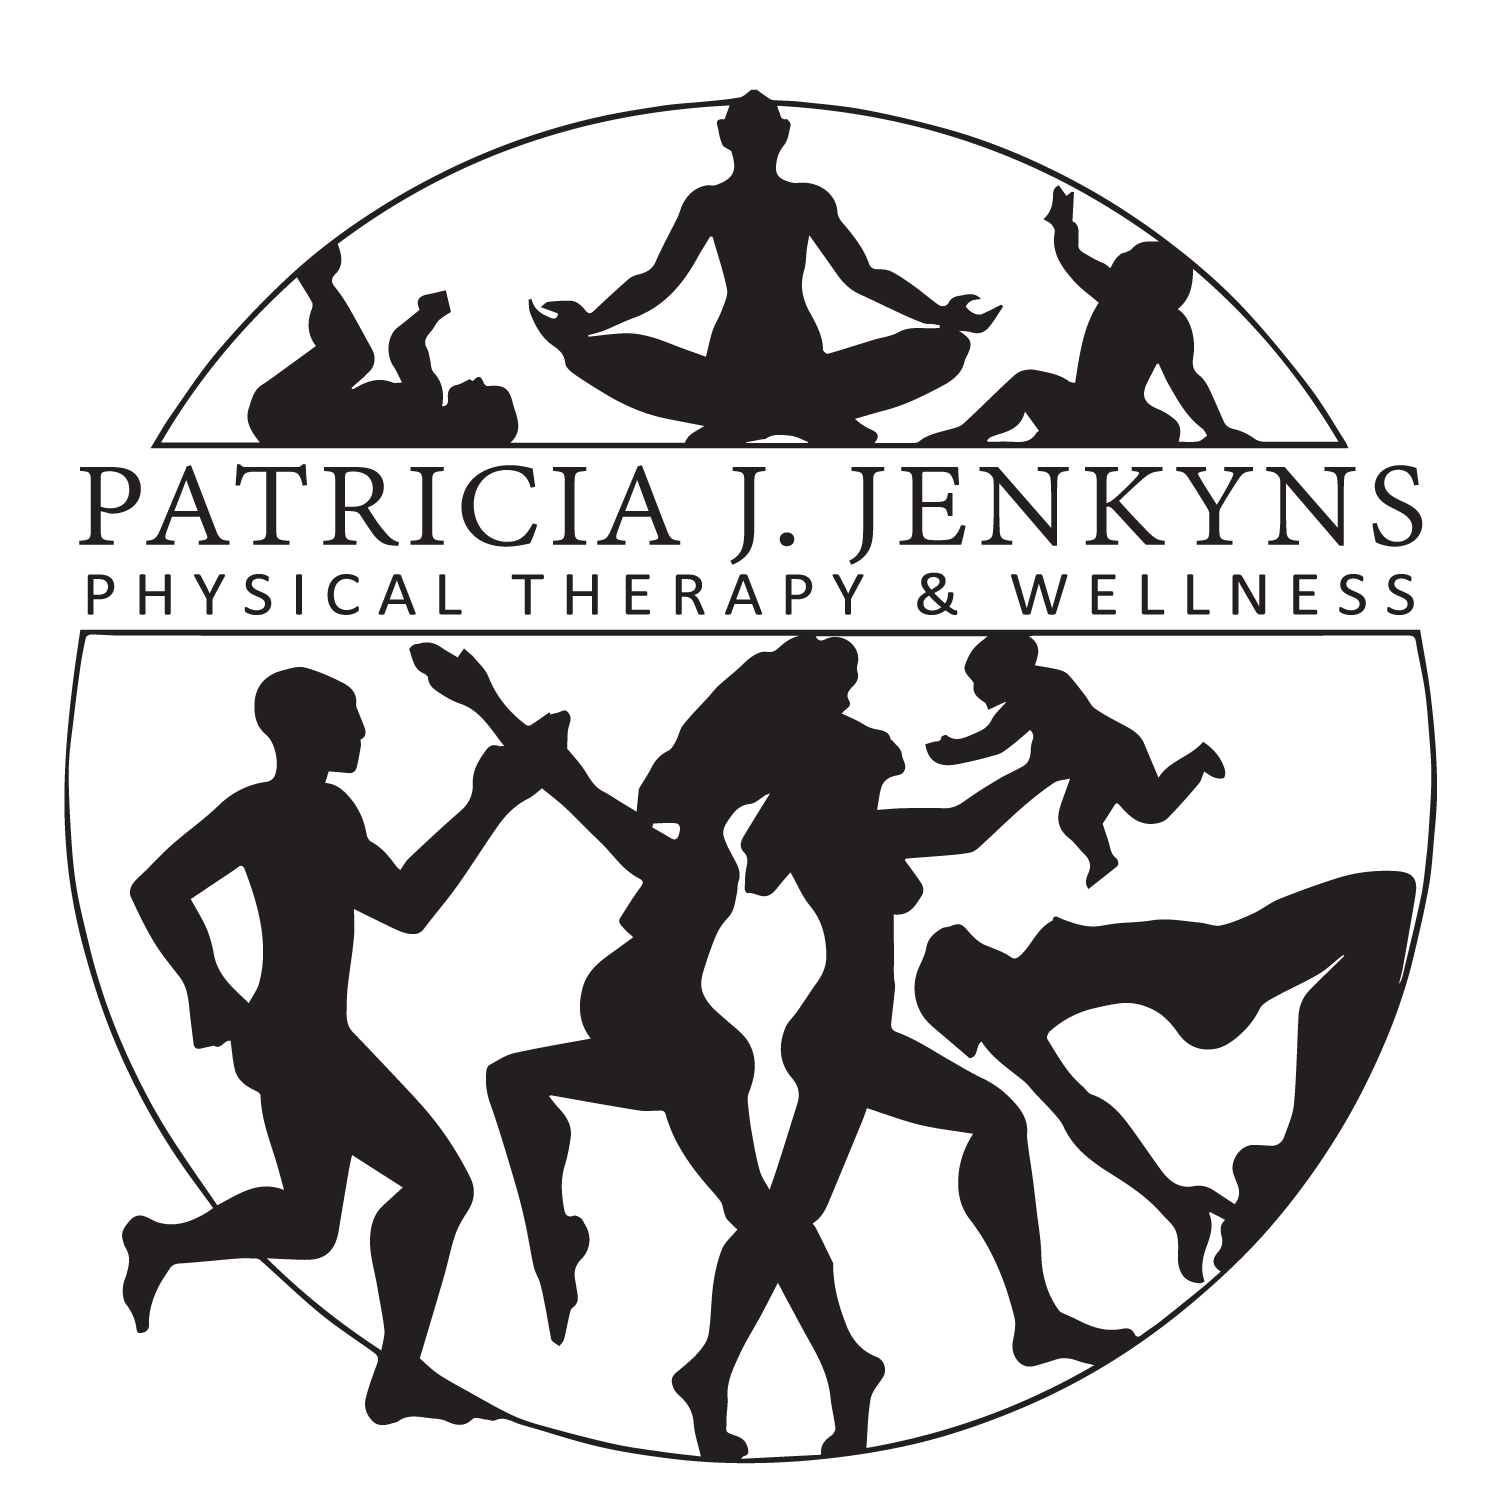 Jenkyns Physical Therapy & Wellness